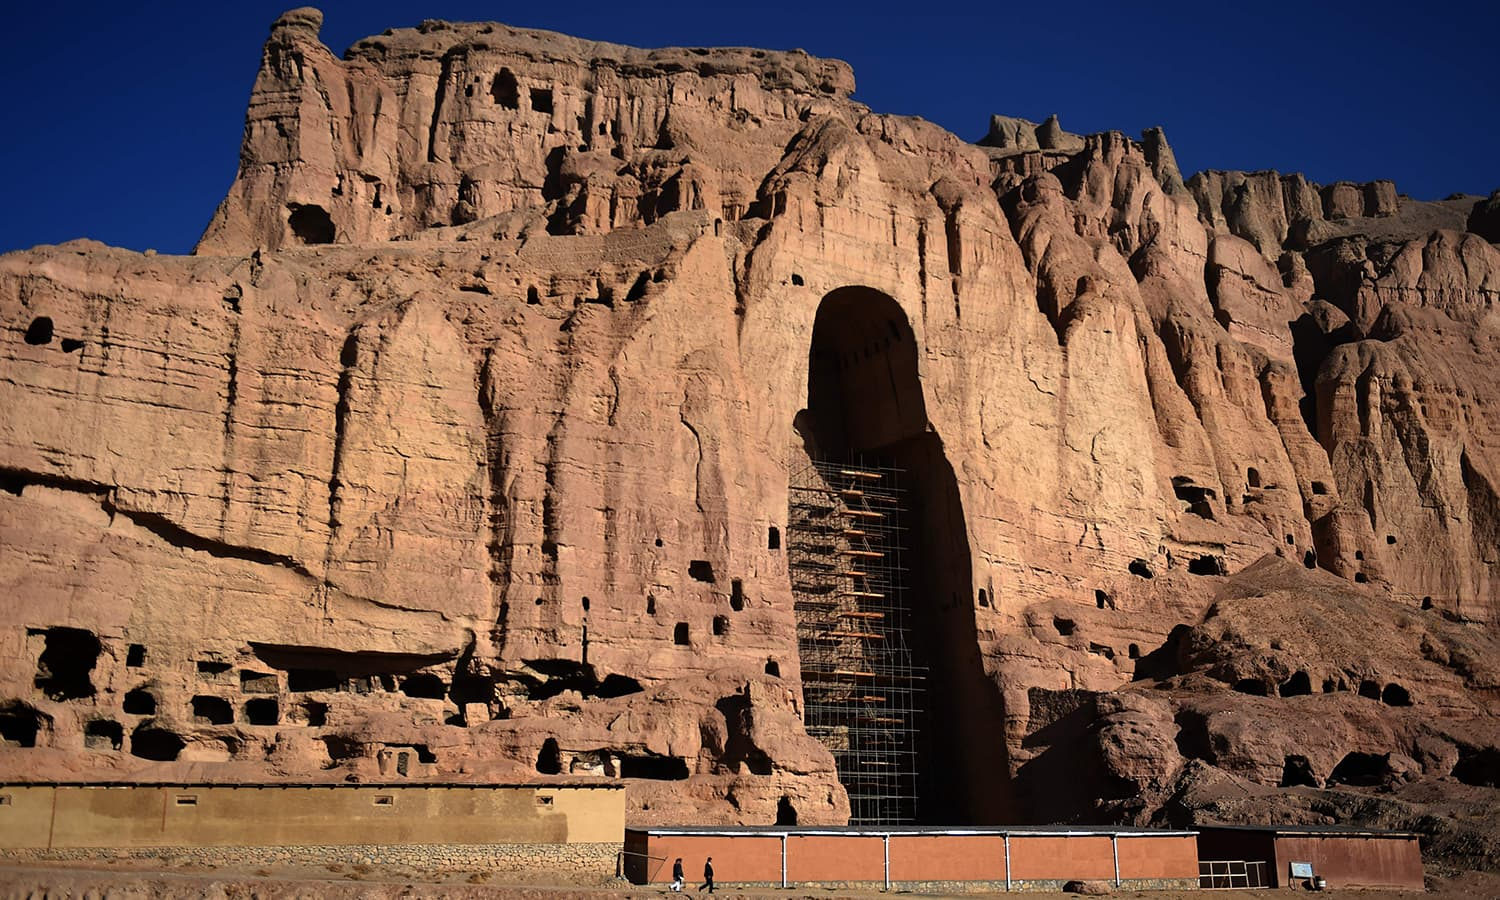 Afghan men walk at the site of the giant Buddha statues, which were destroyed by the Taliban in 2001. ─AFP